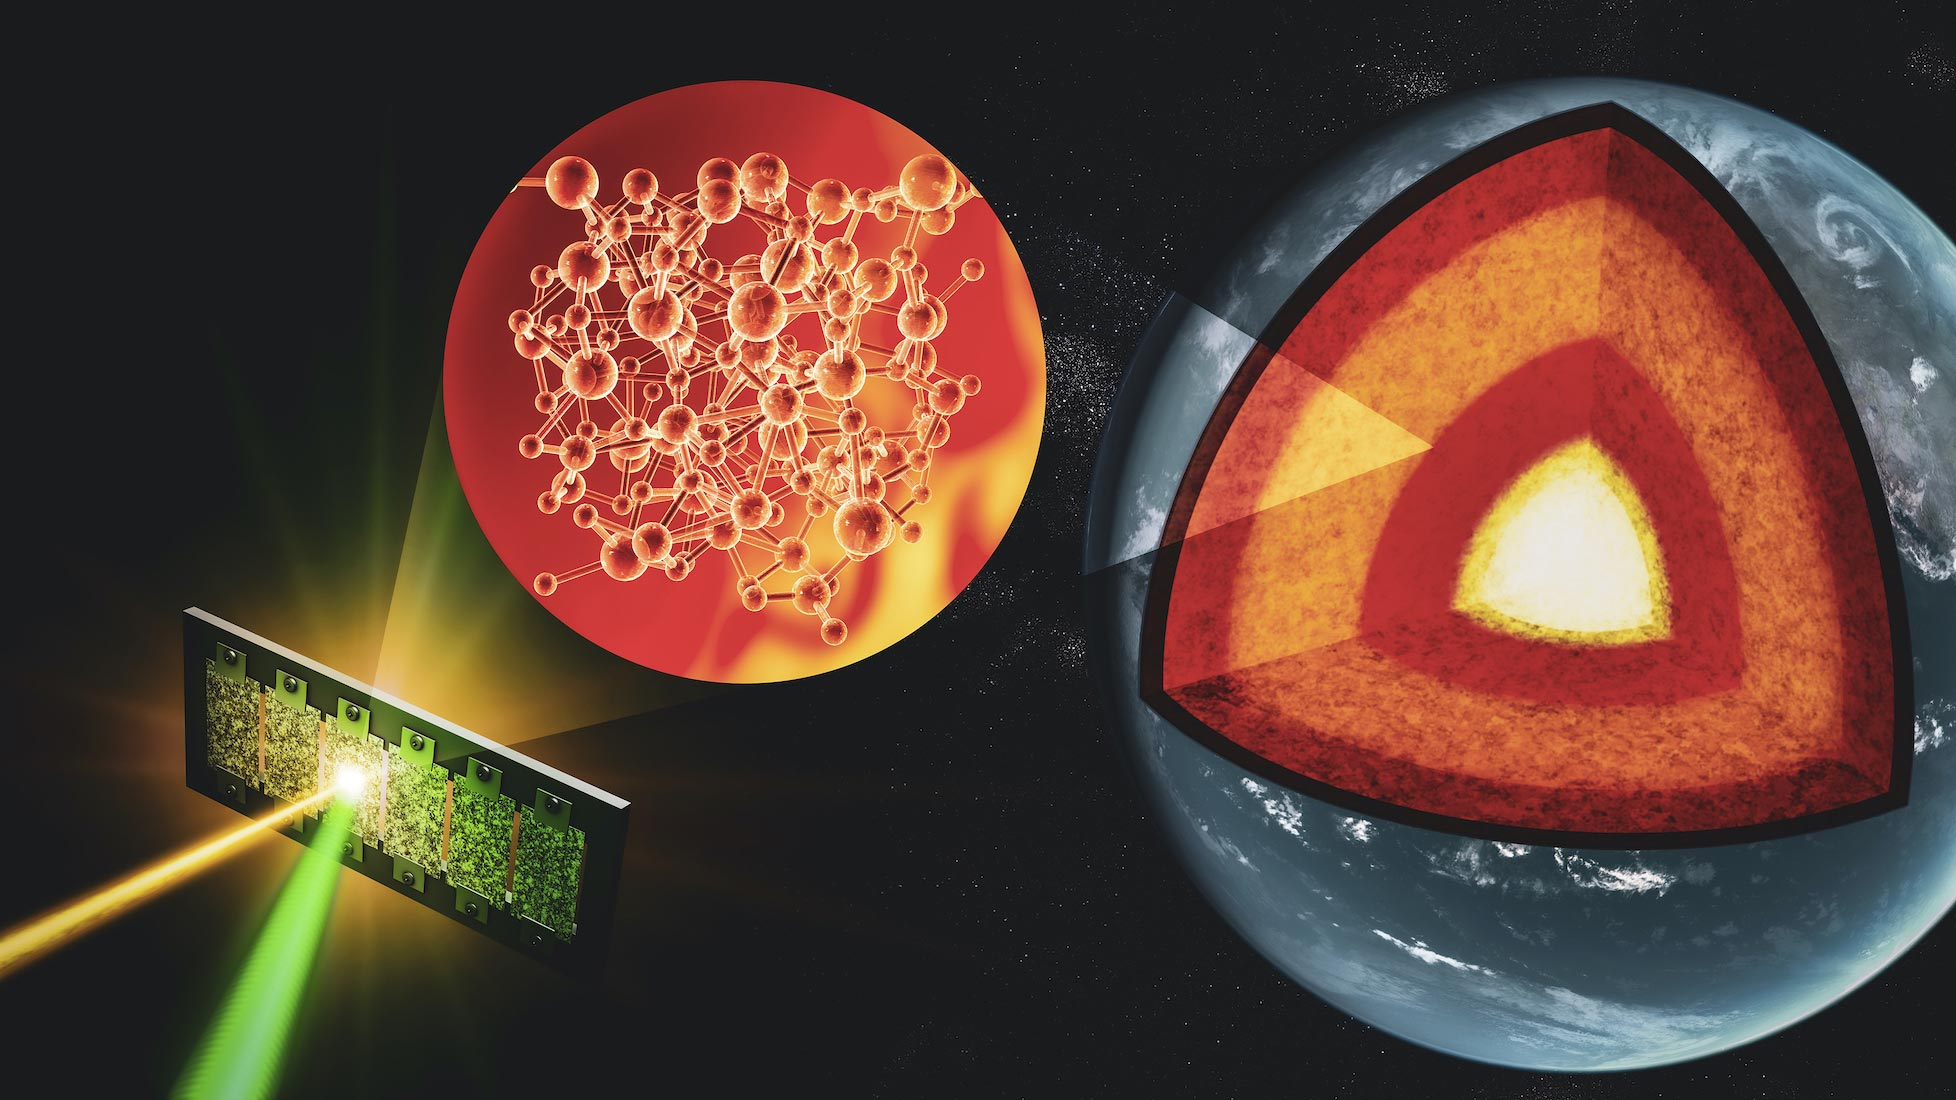 Researchers Probe Materials at Extreme Deep-Earth Conditions to Decipher Earth�s Evolutionary Tale - SciTechDaily